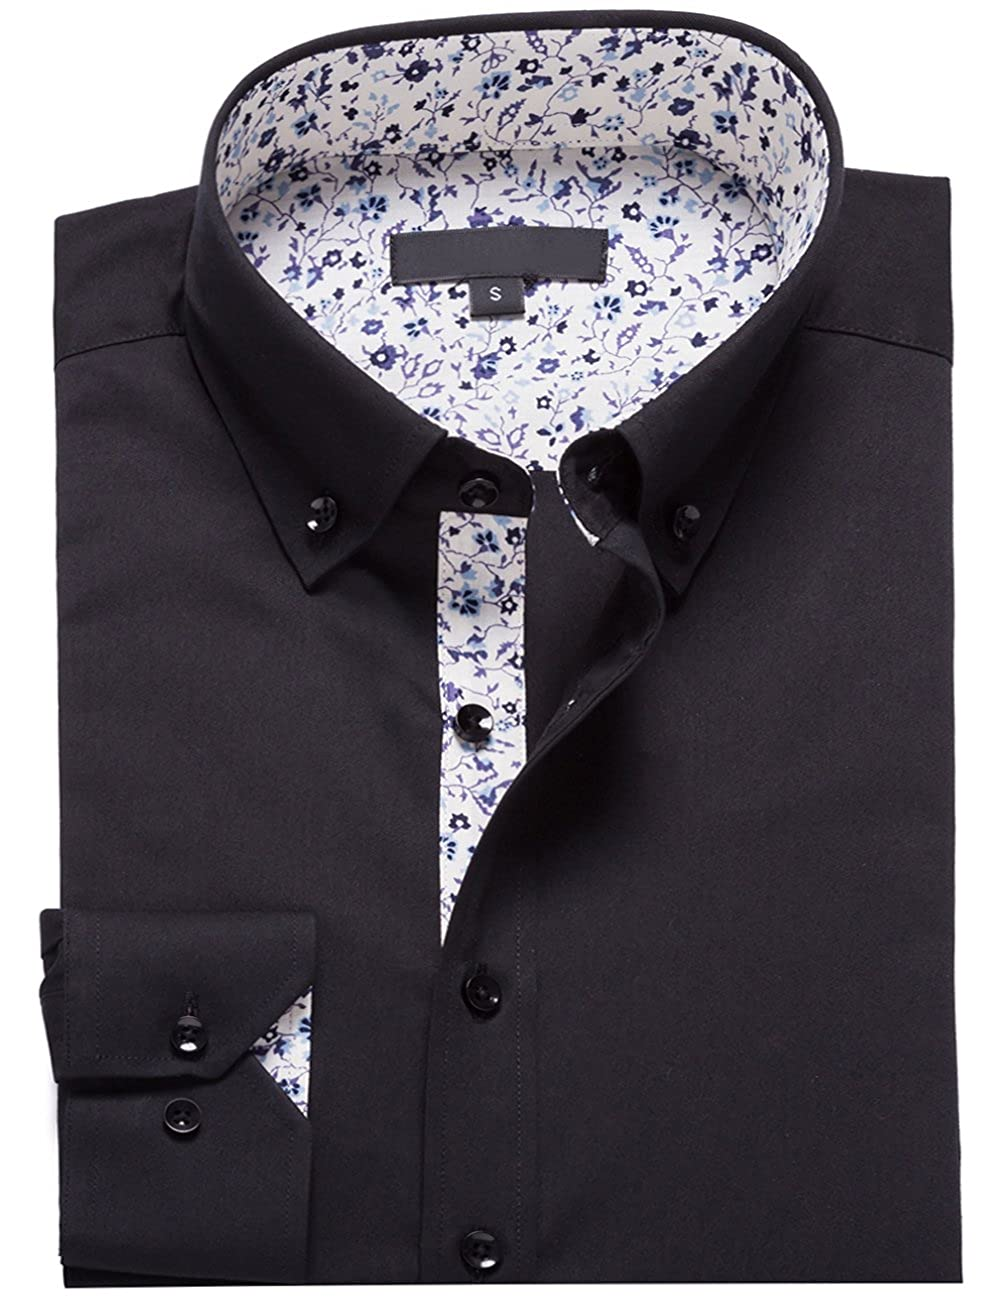 6826f6e7d7 STYLE:Mens Tops Fashion Long Sleeve Fitted Dress Shirts(Collared Floral  Lined) FEATURE:This Stylish Men's Collared Dress Shirt Comes in a Modern Fit  ...